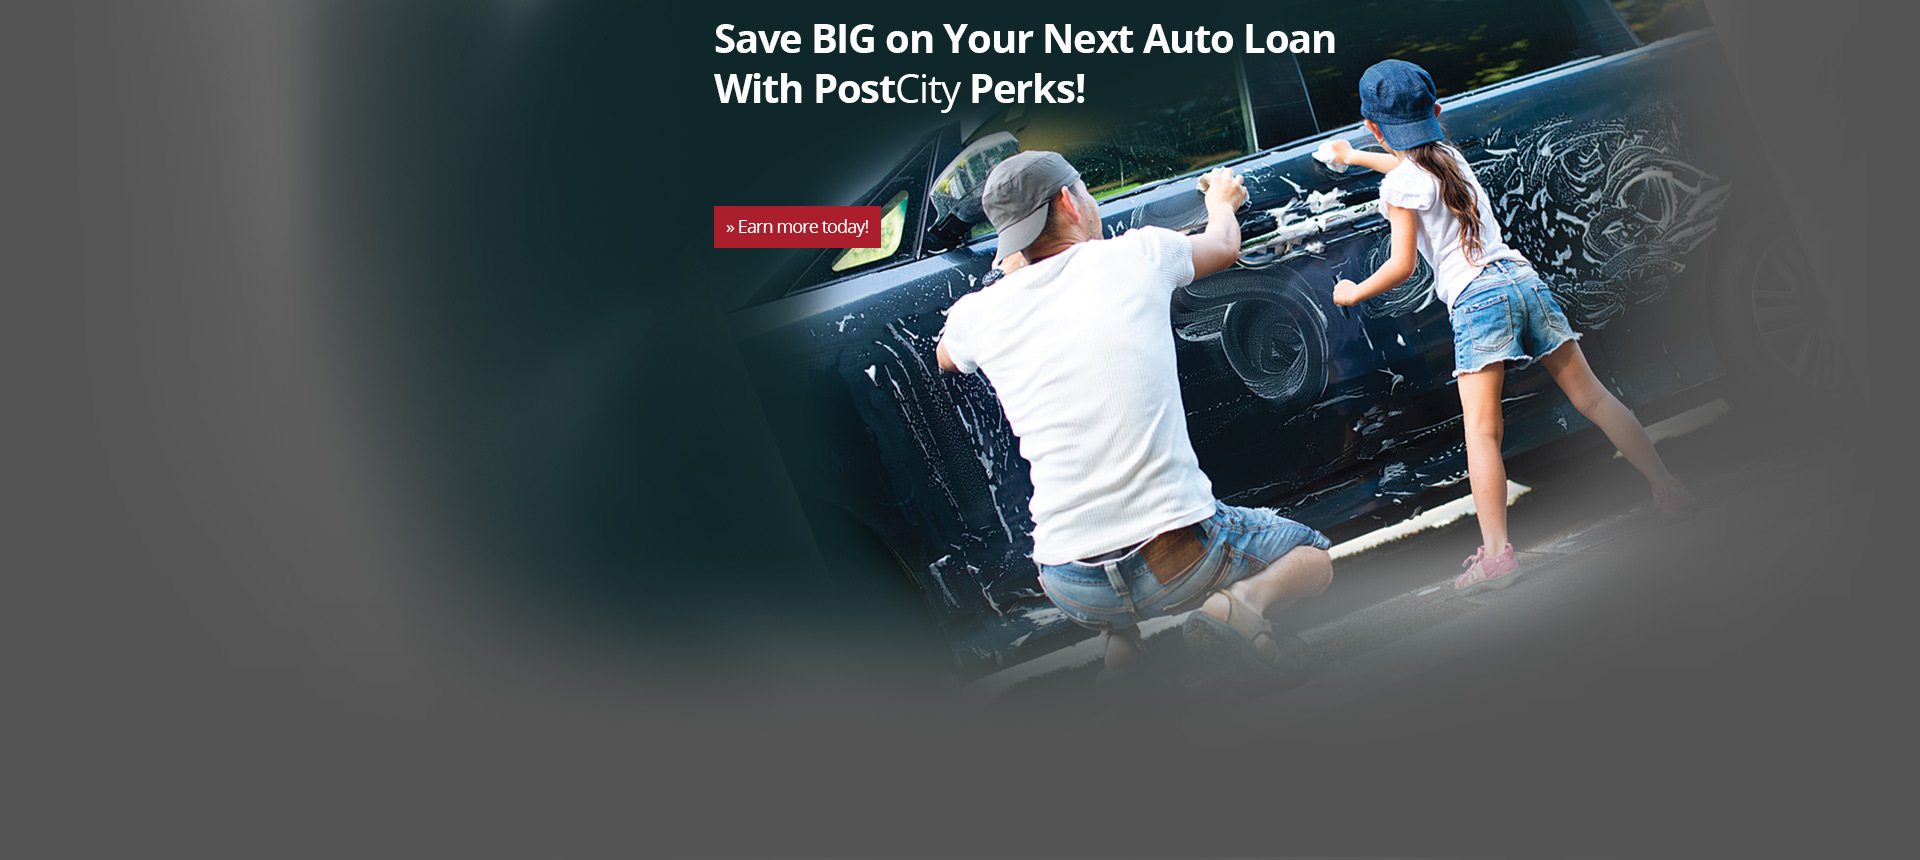 Our Auto Loan Rates Can Save You Money!